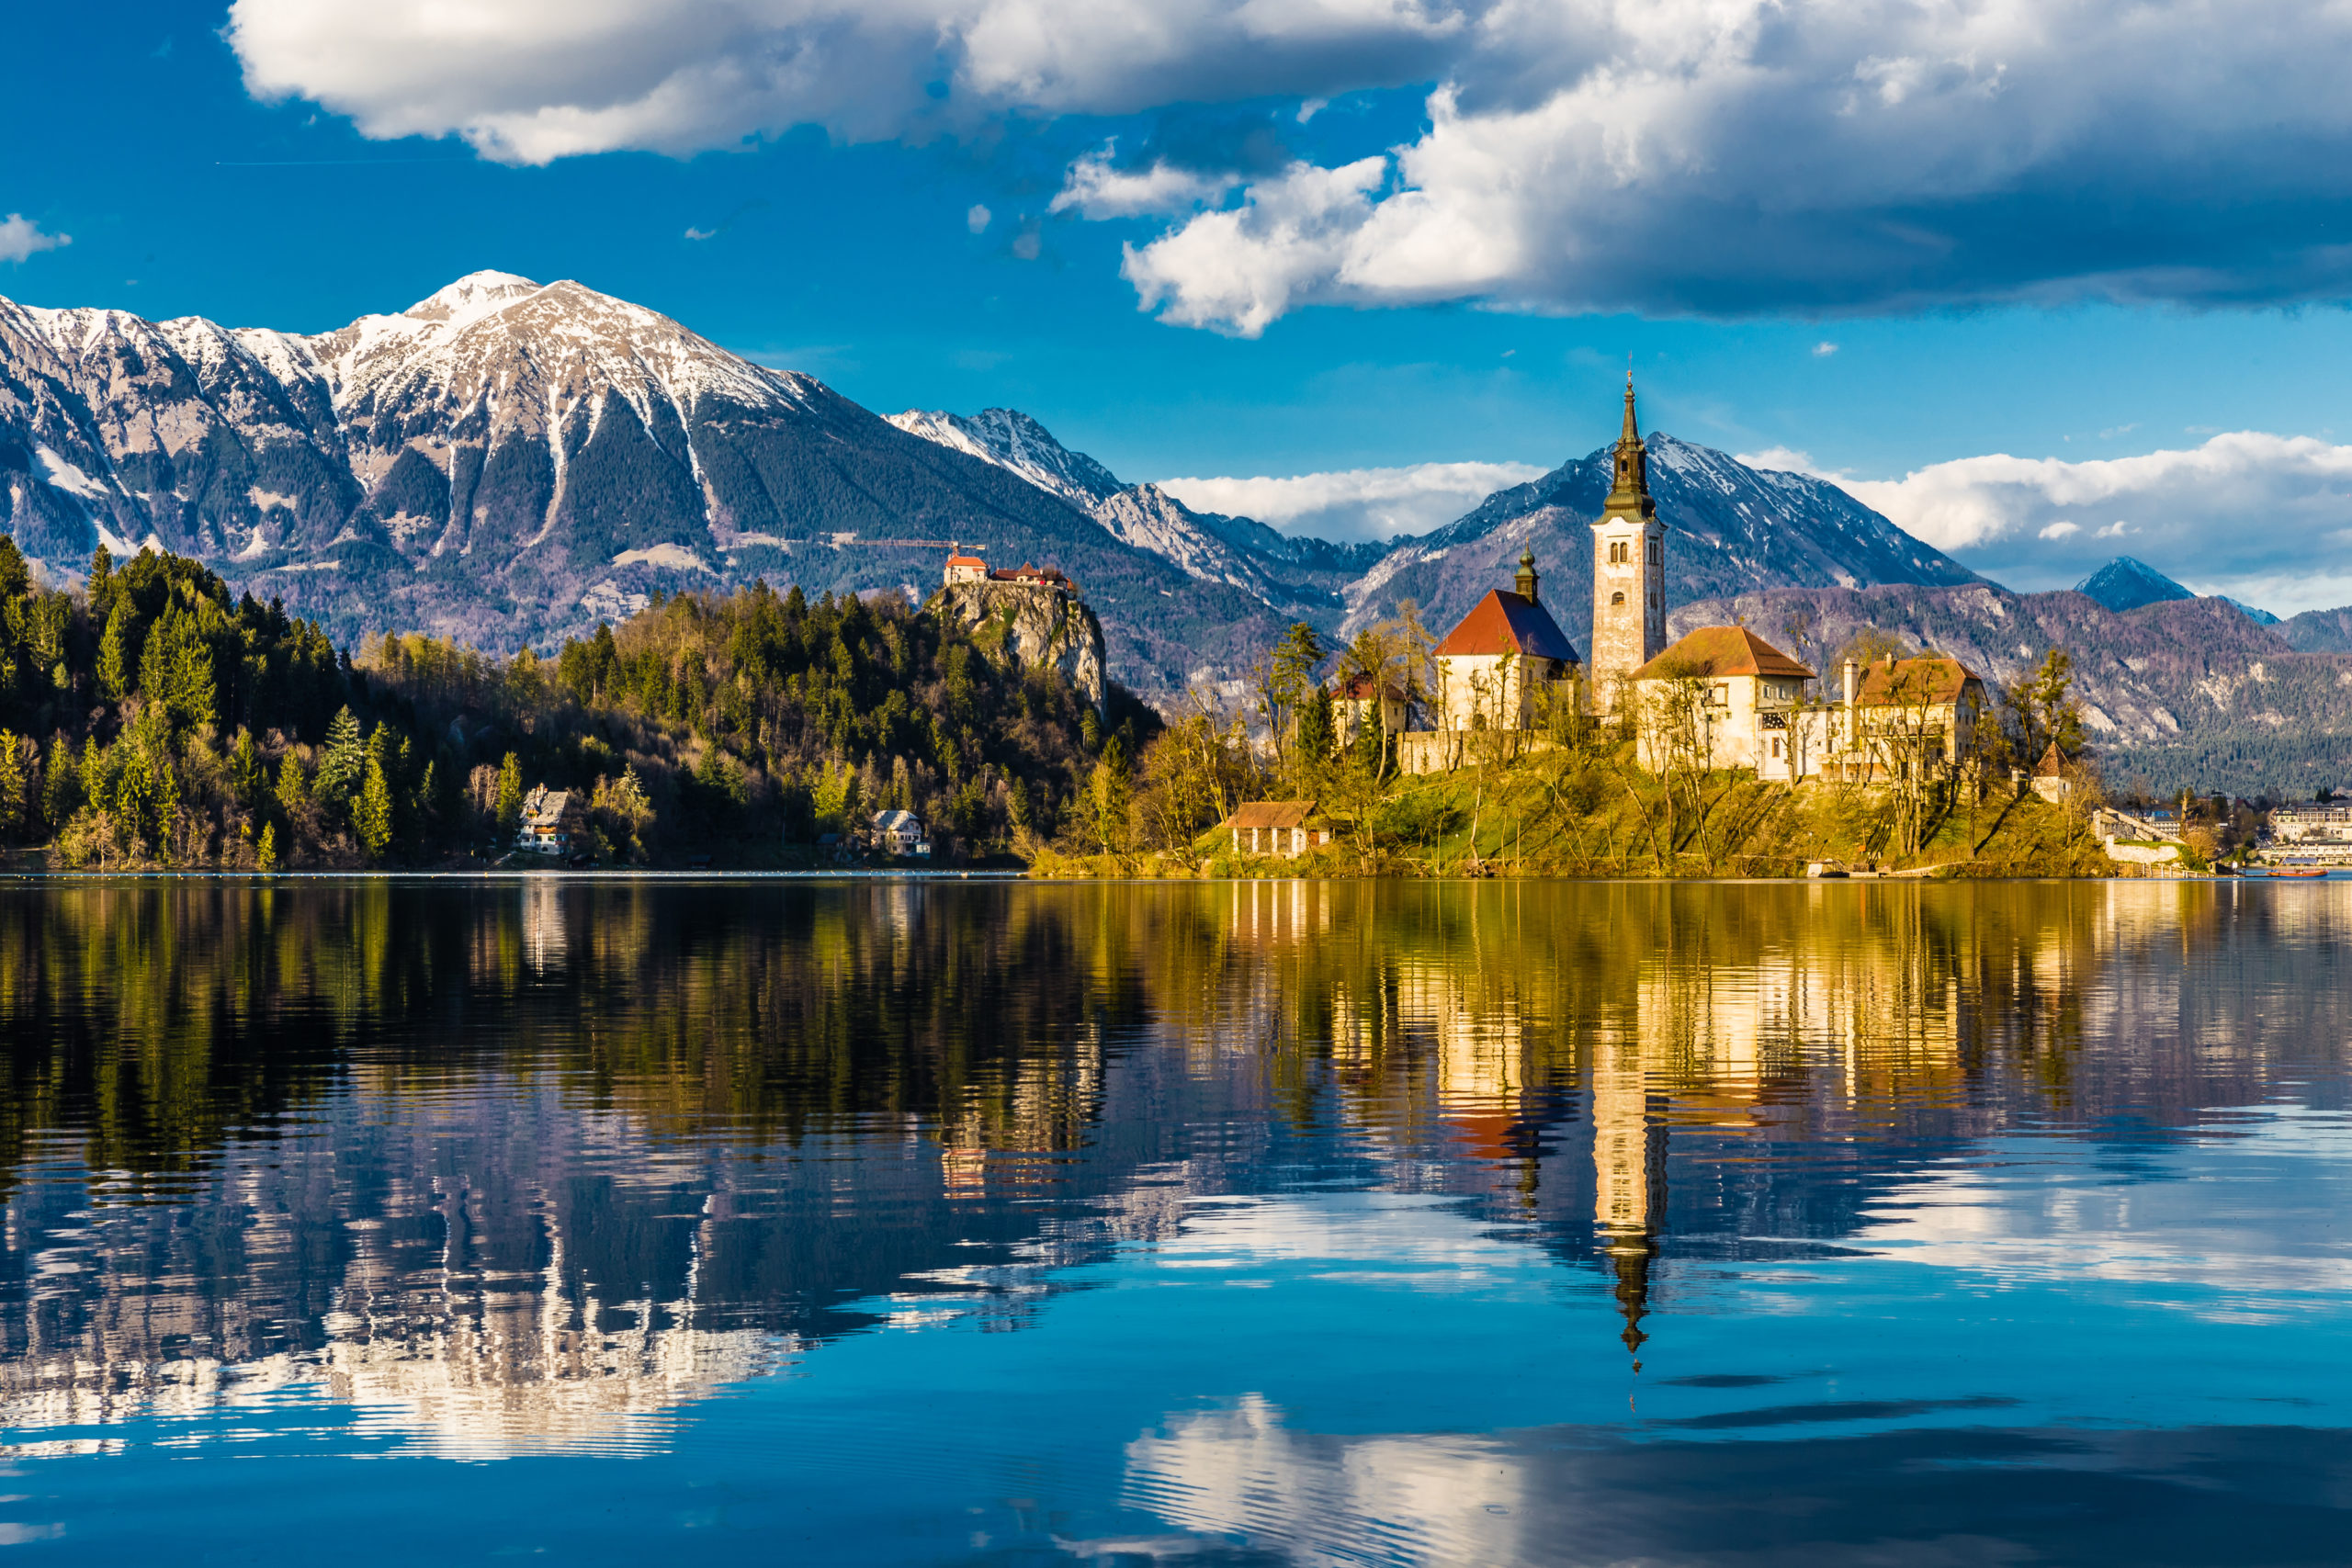 Amazing view of Lake Bled